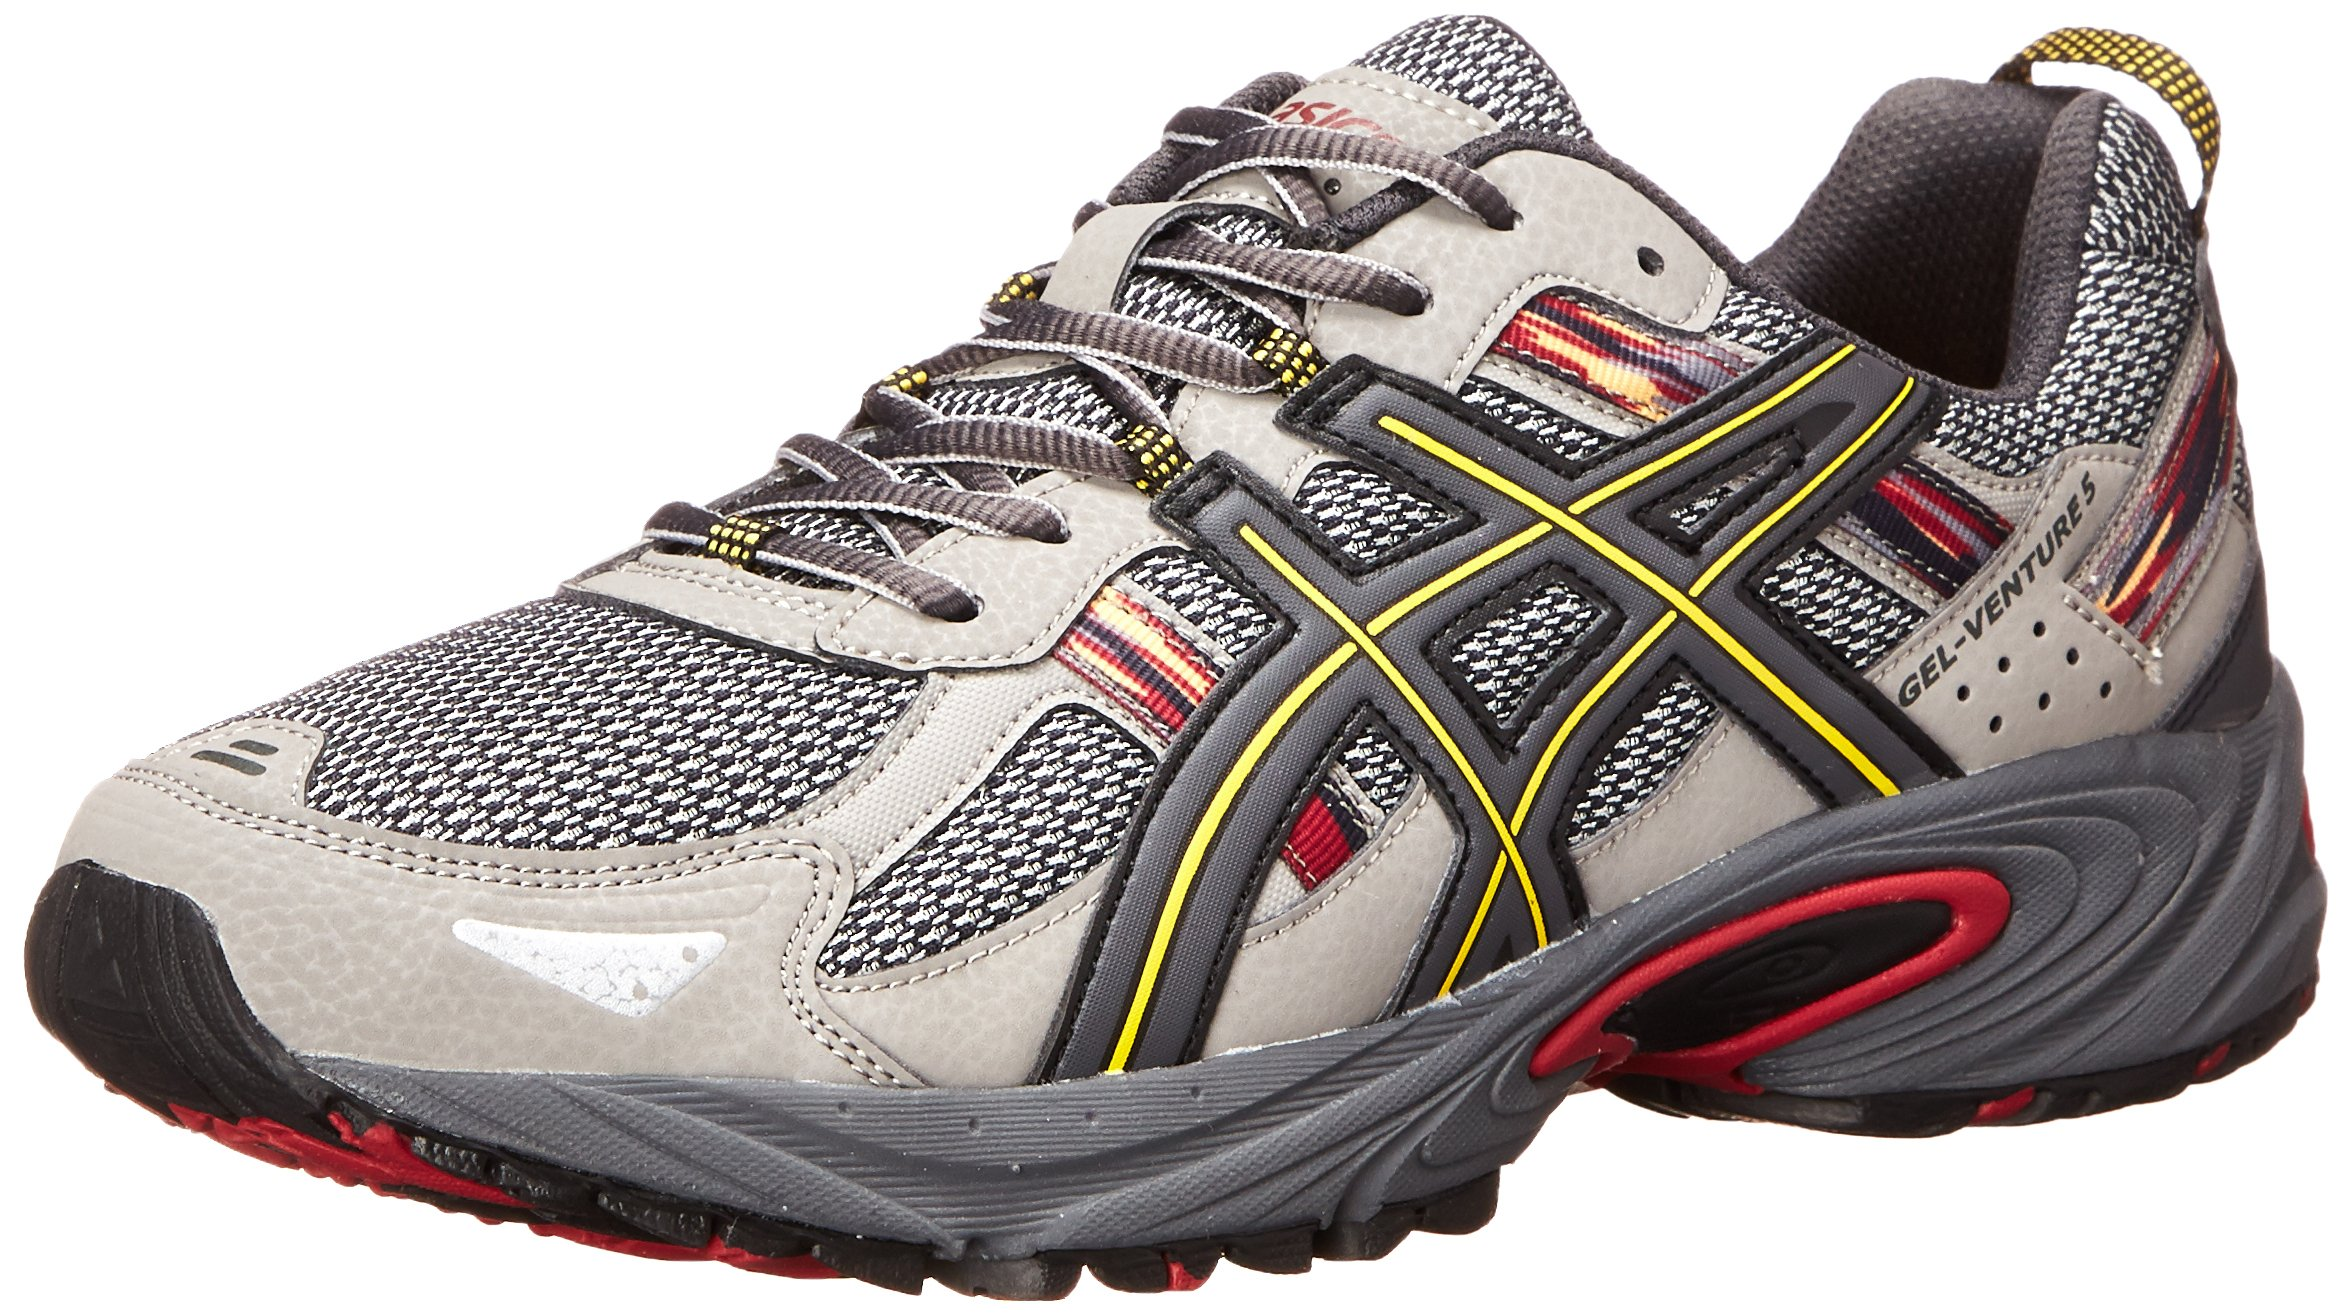 ASICS Men's GEL Venture 5 Running Shoe Review